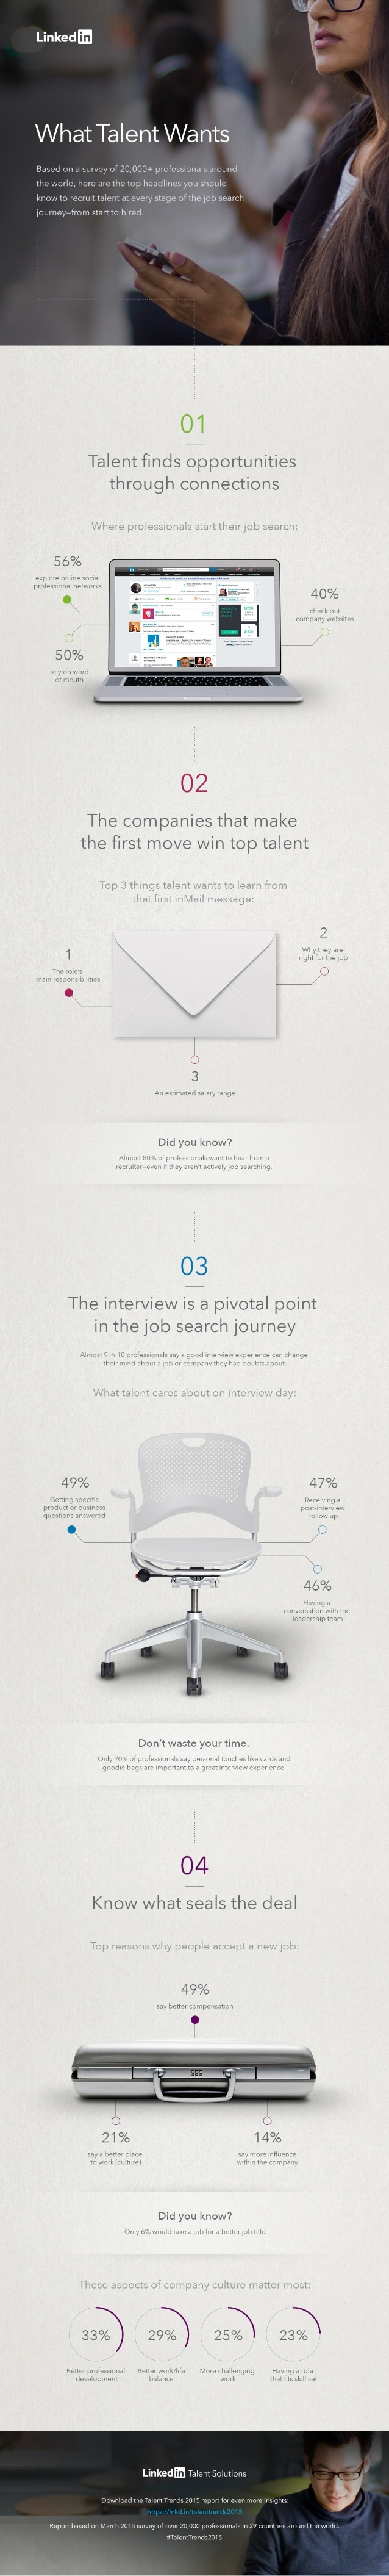 global-talent-trends-2015-infographic-1-638